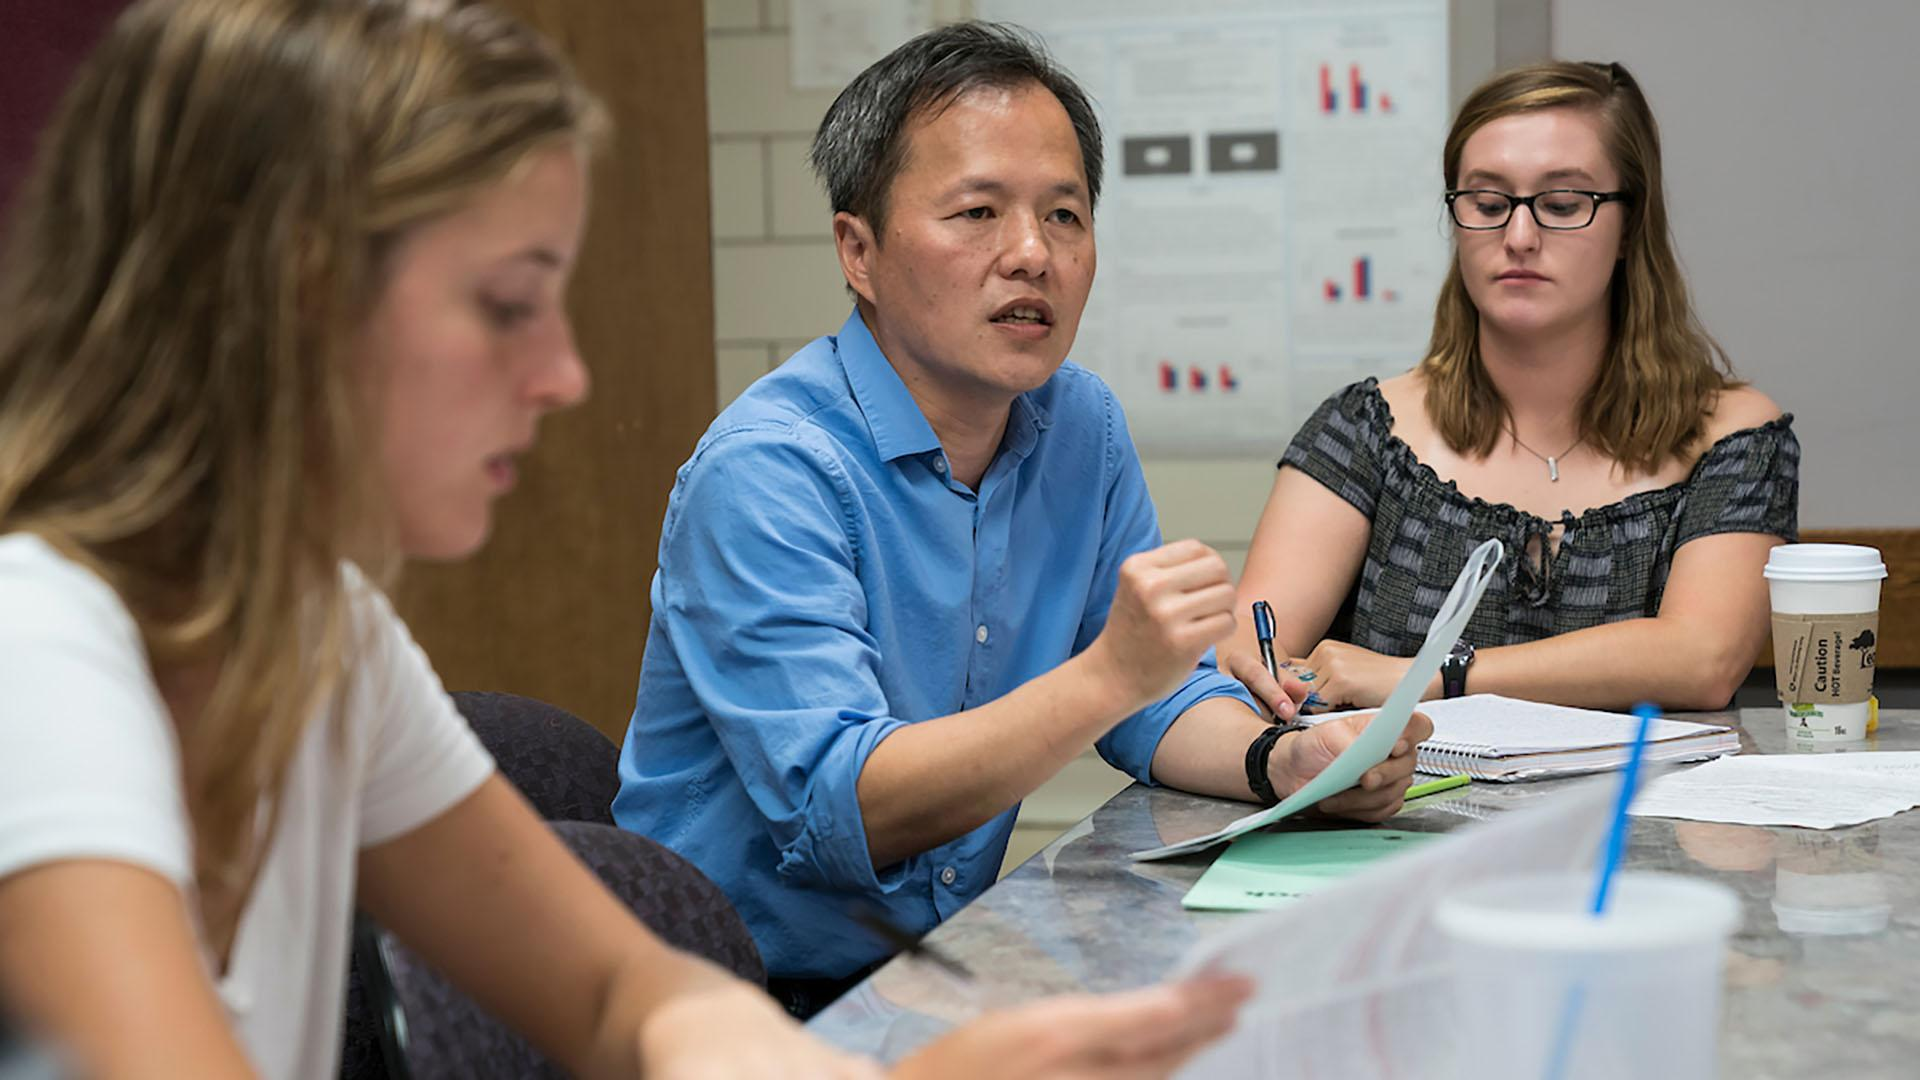 Professor Wan-Chun Liu speaks with a small group of students at a table.